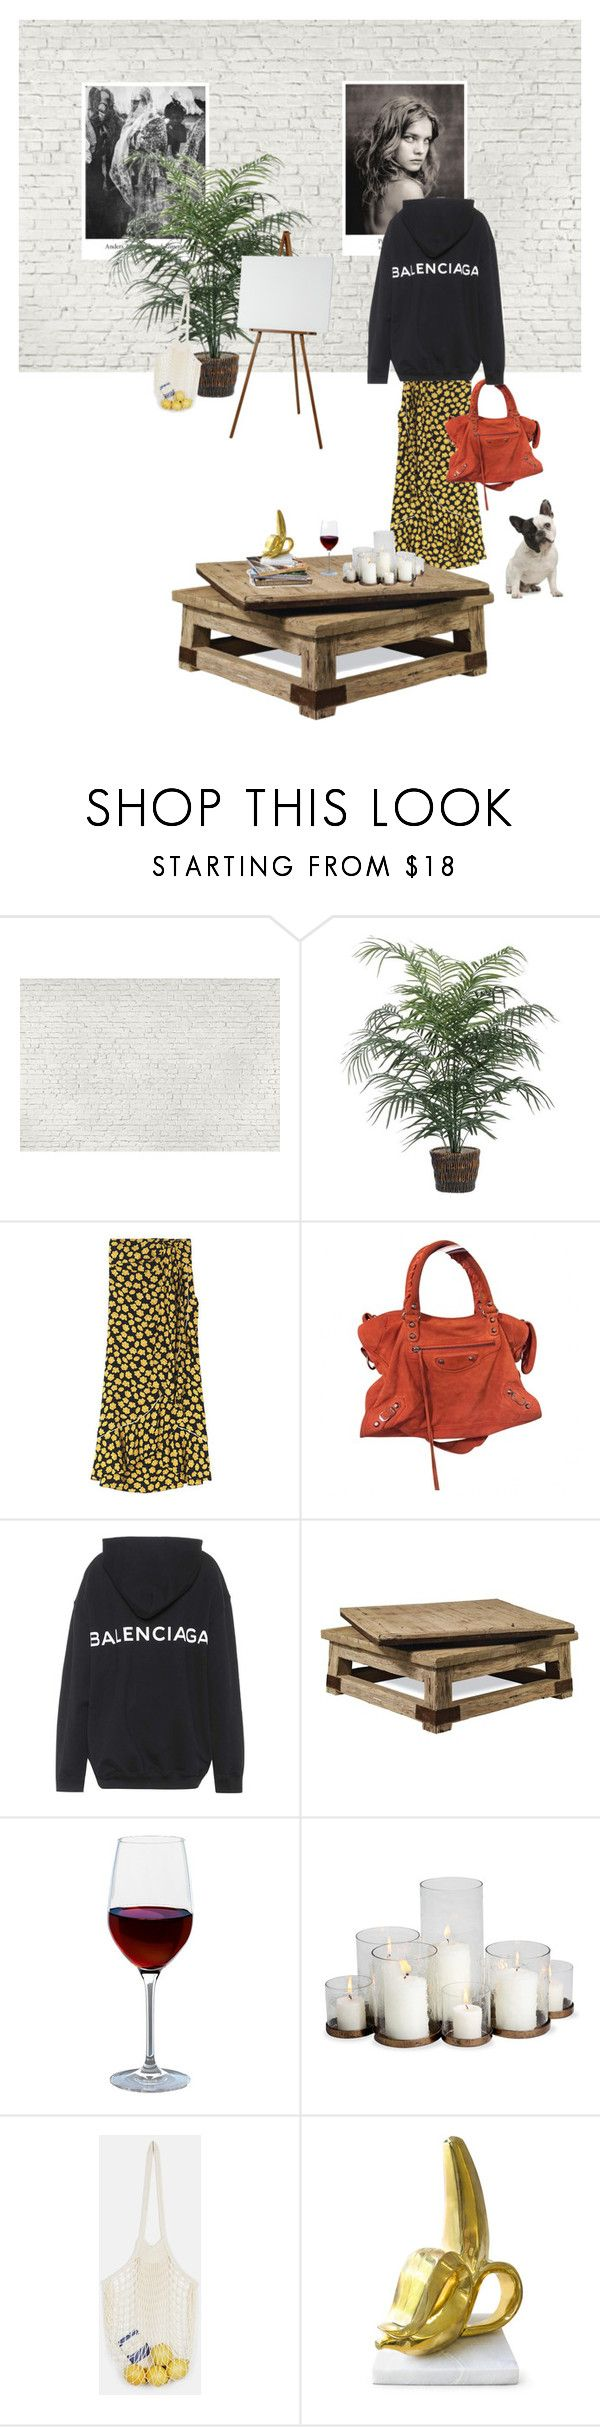 """Untitled #244"" by fashiondisguise on Polyvore featuring interior, interiors, interior design, home, home decor, interior decorating, 1Wall, Balenciaga, Ralph Lauren and Artland"